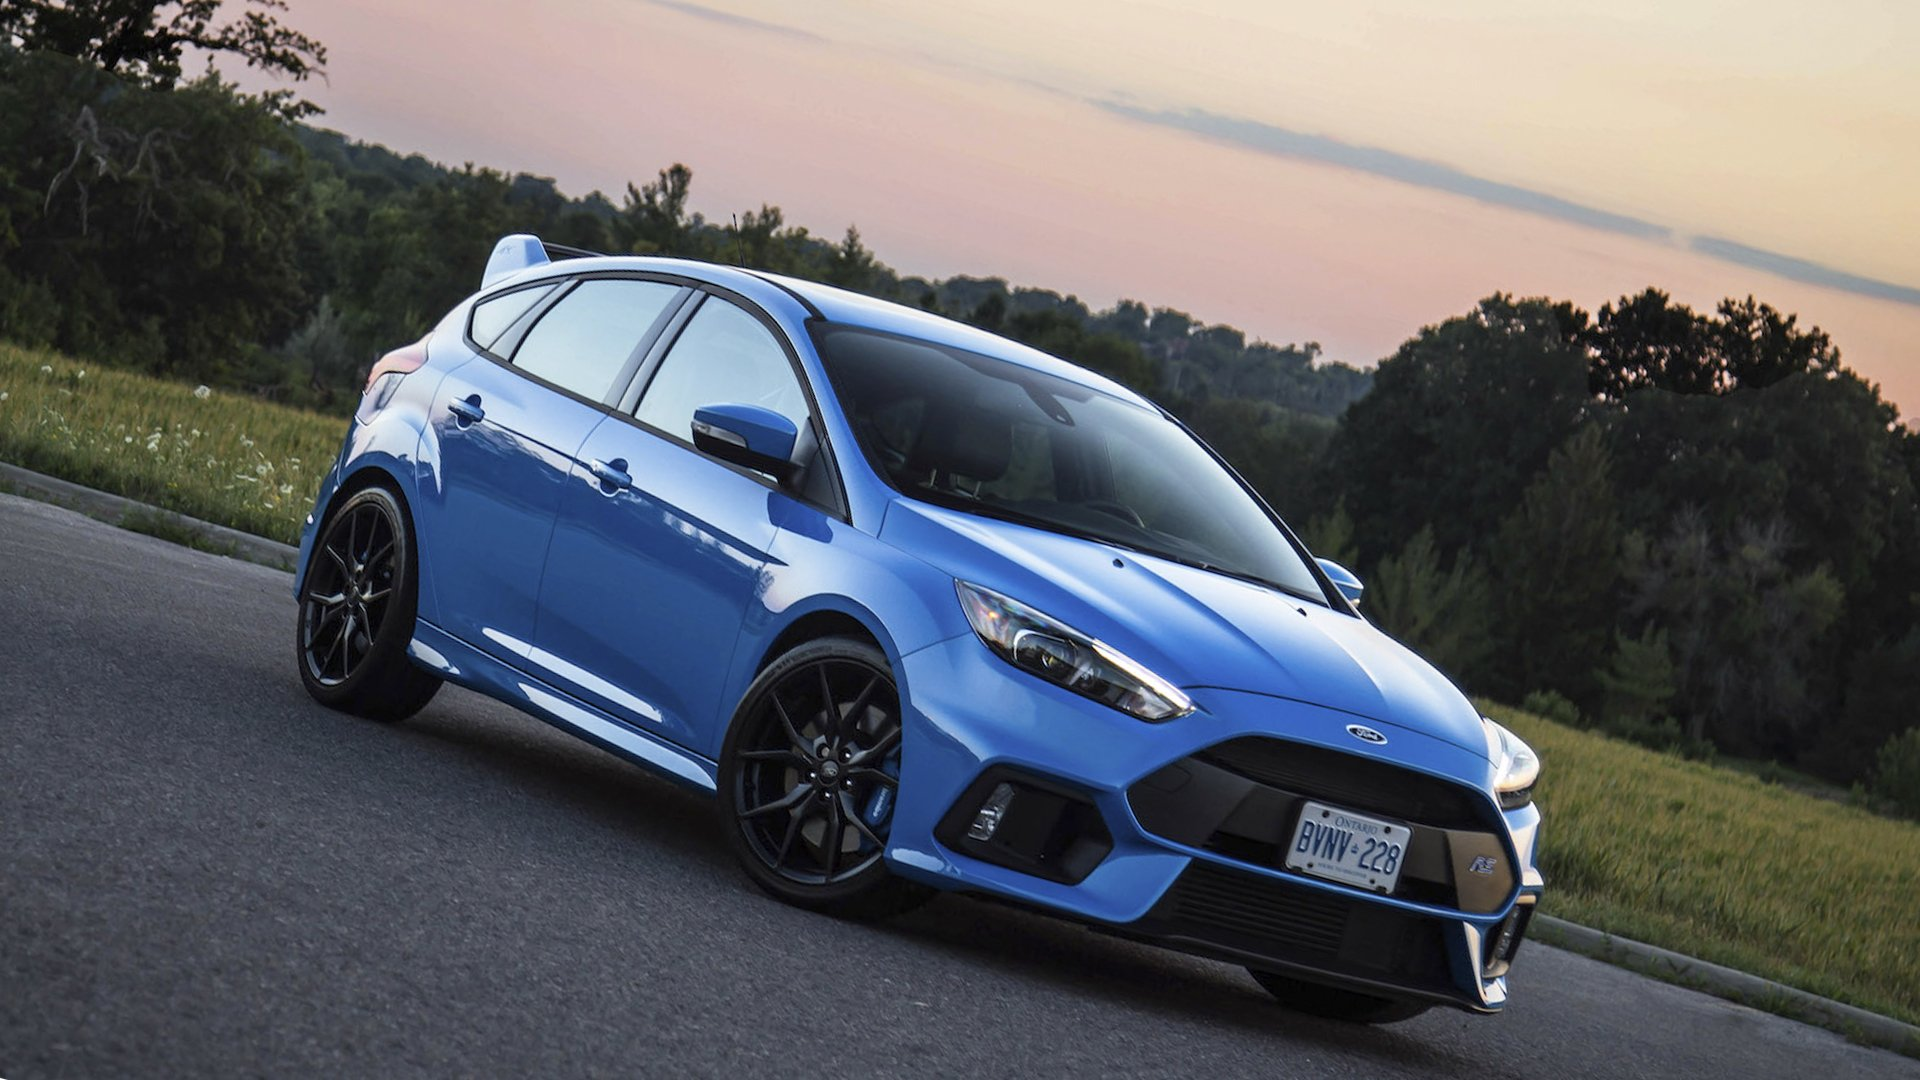 New 2019 Ford Focus Release Date